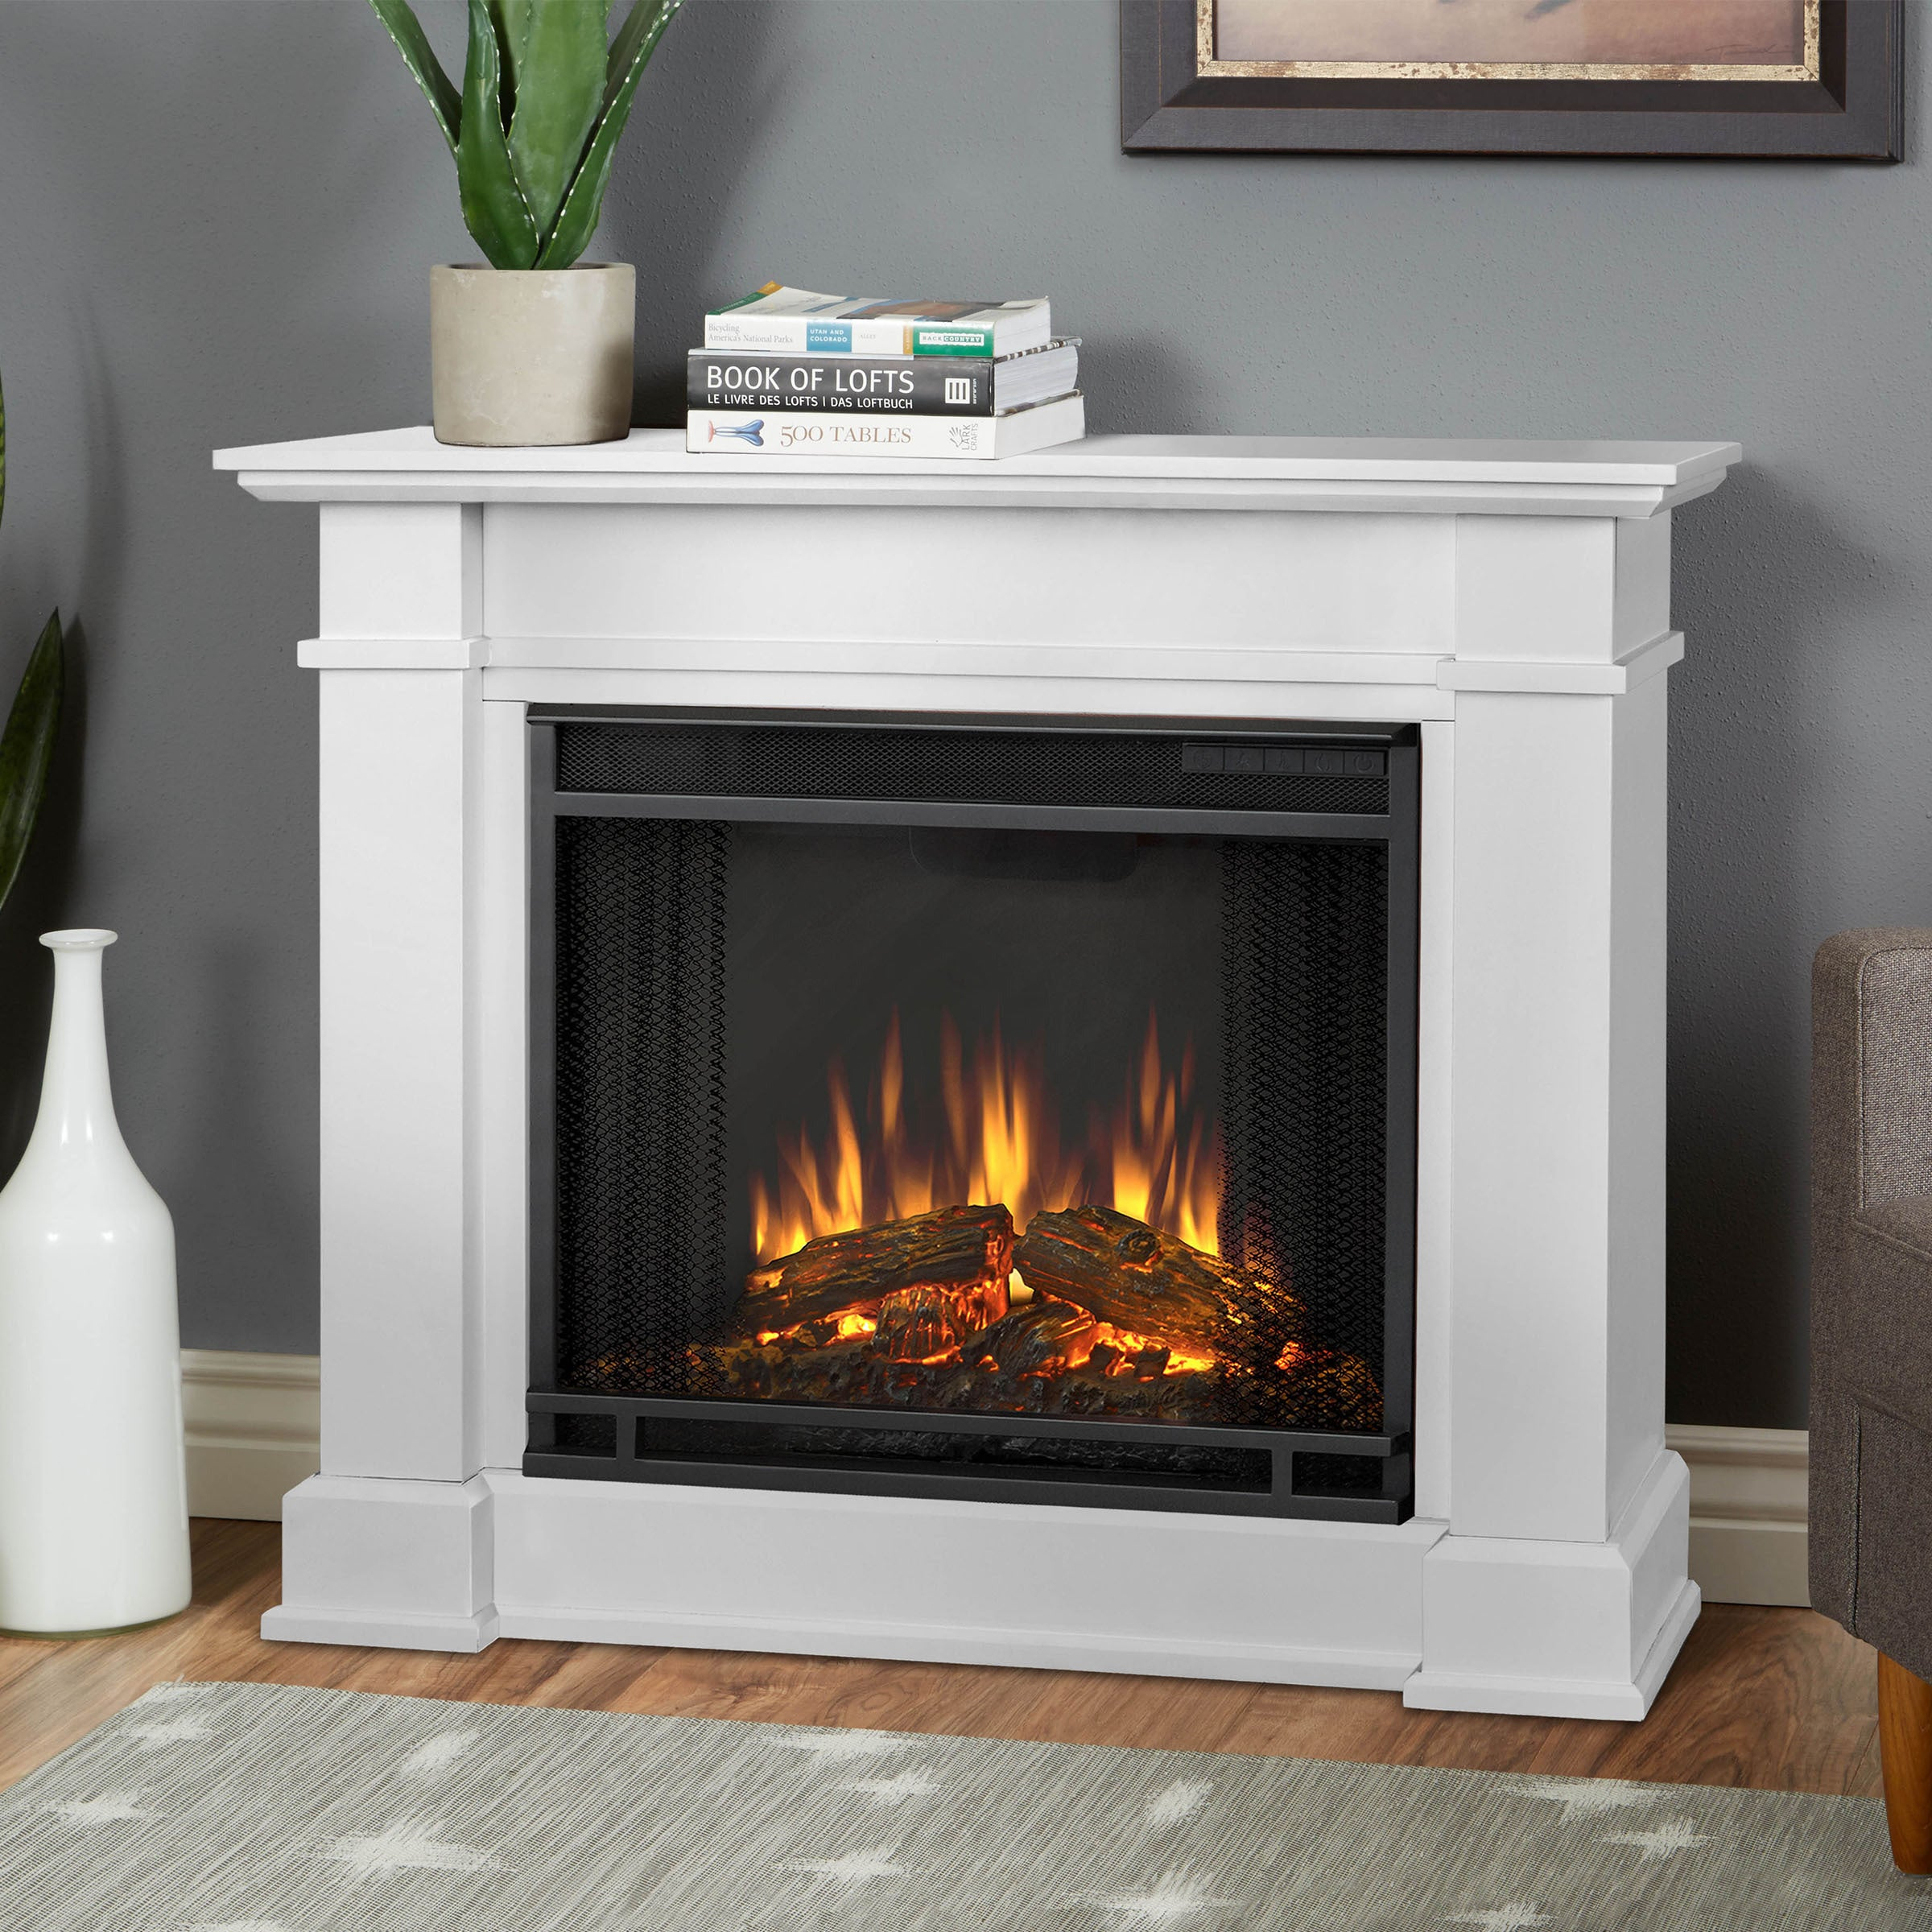 Real Flame Devin White 36.3 in. W x 11 in. D x 30.4 in. H...